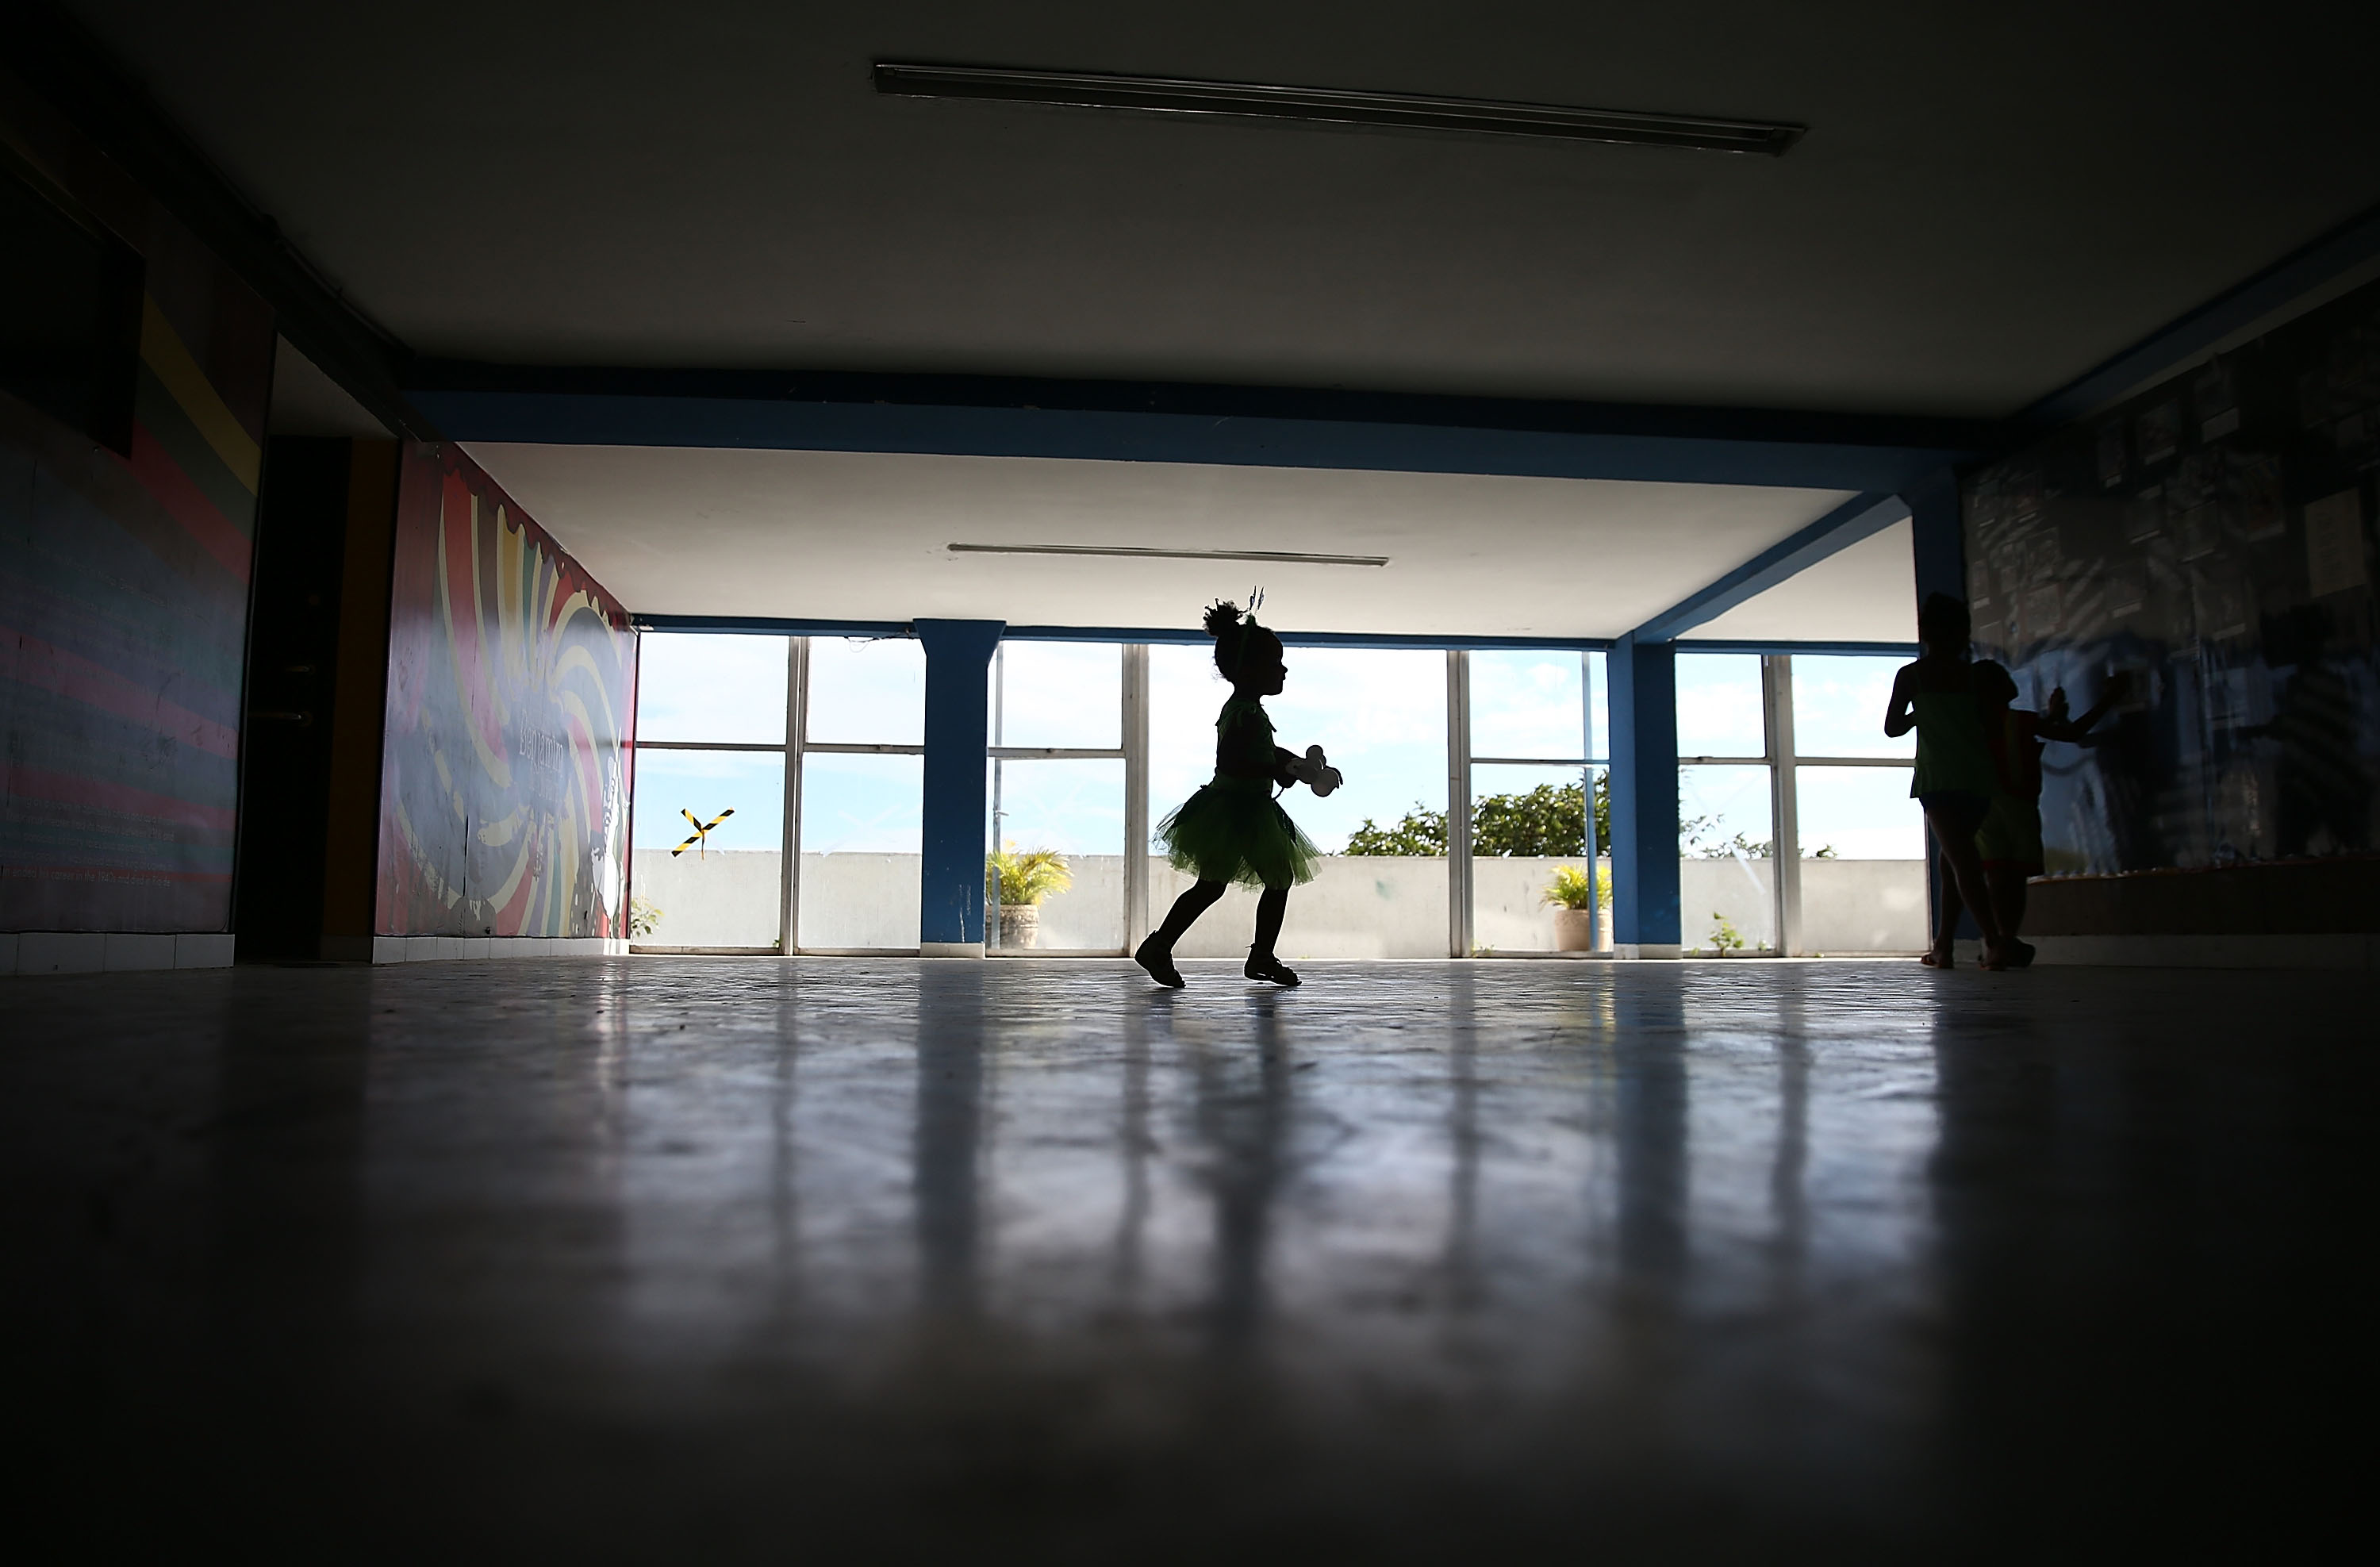 A young reveler runs during pre-Carnival festivities in the Cantagalo shantytown community next to neighboring Pavao-Pavaozinho on February 22, 2014 in Rio de Janeiro.